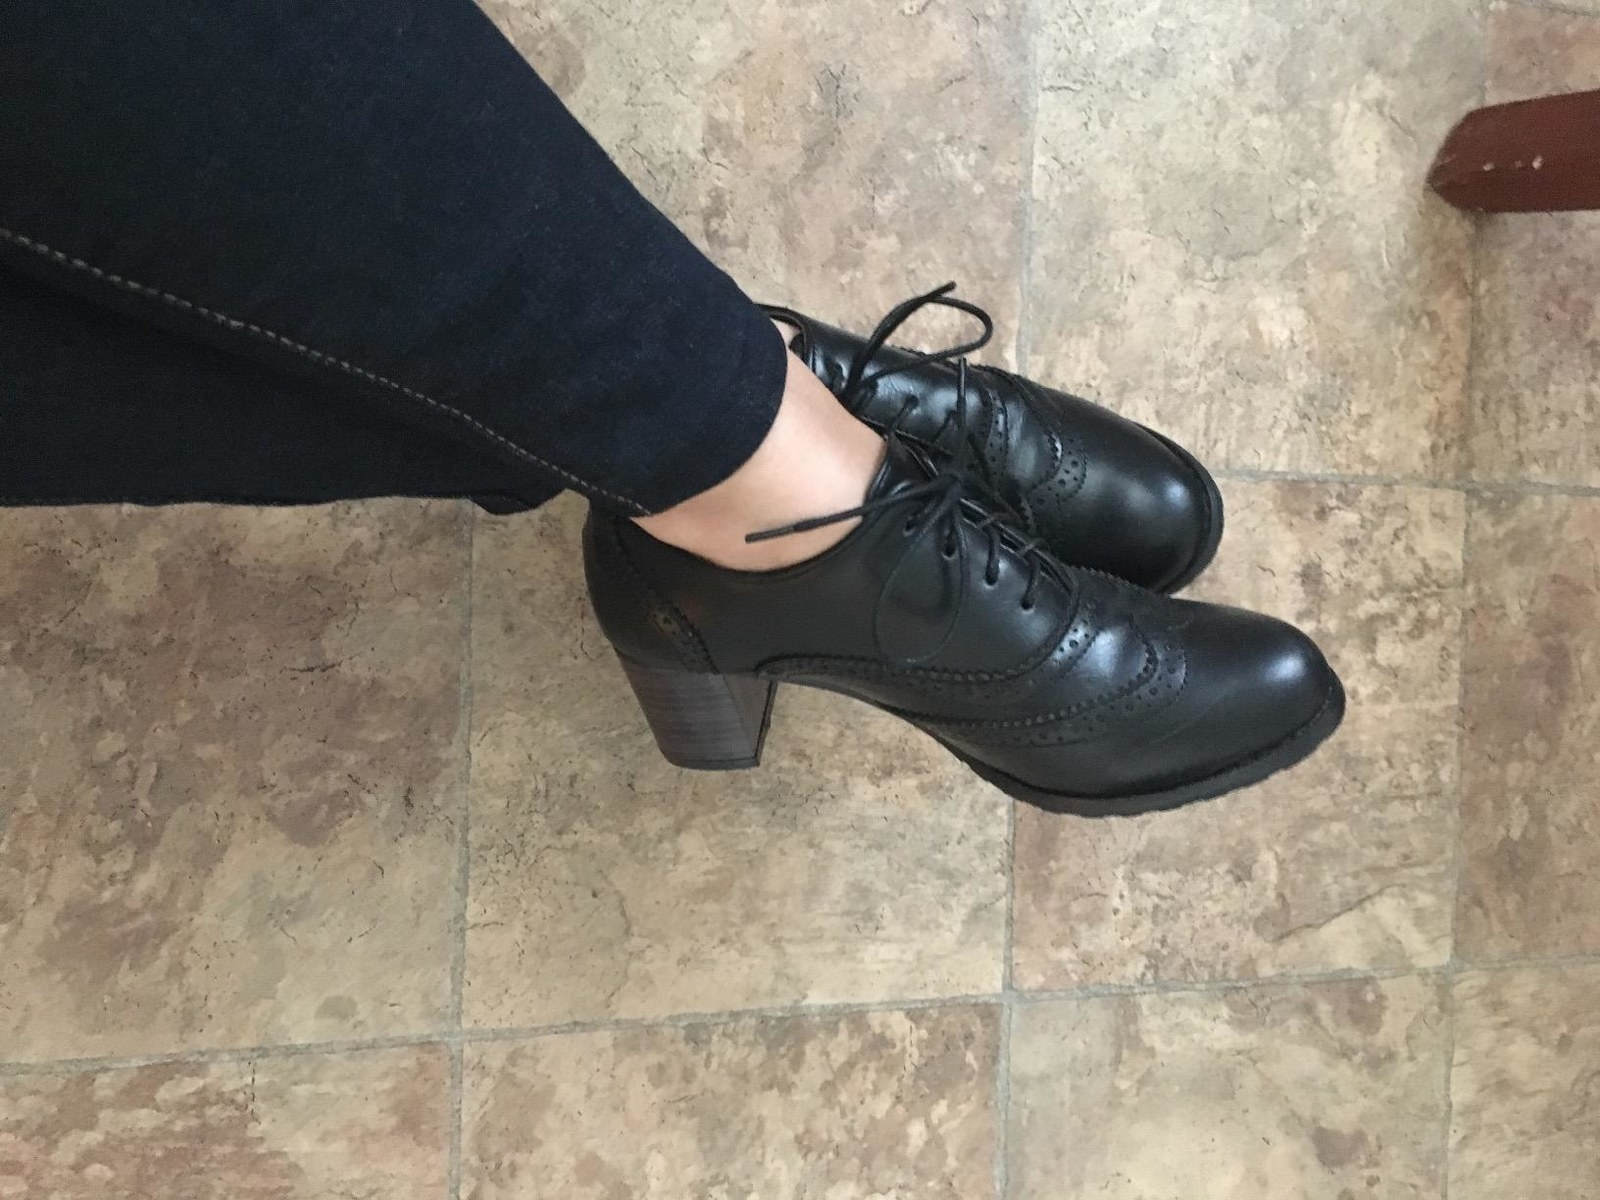 ca2d38c29a6dd 22 Pairs Of Heels You Can Get On Amazon That Are Actually Comfortable